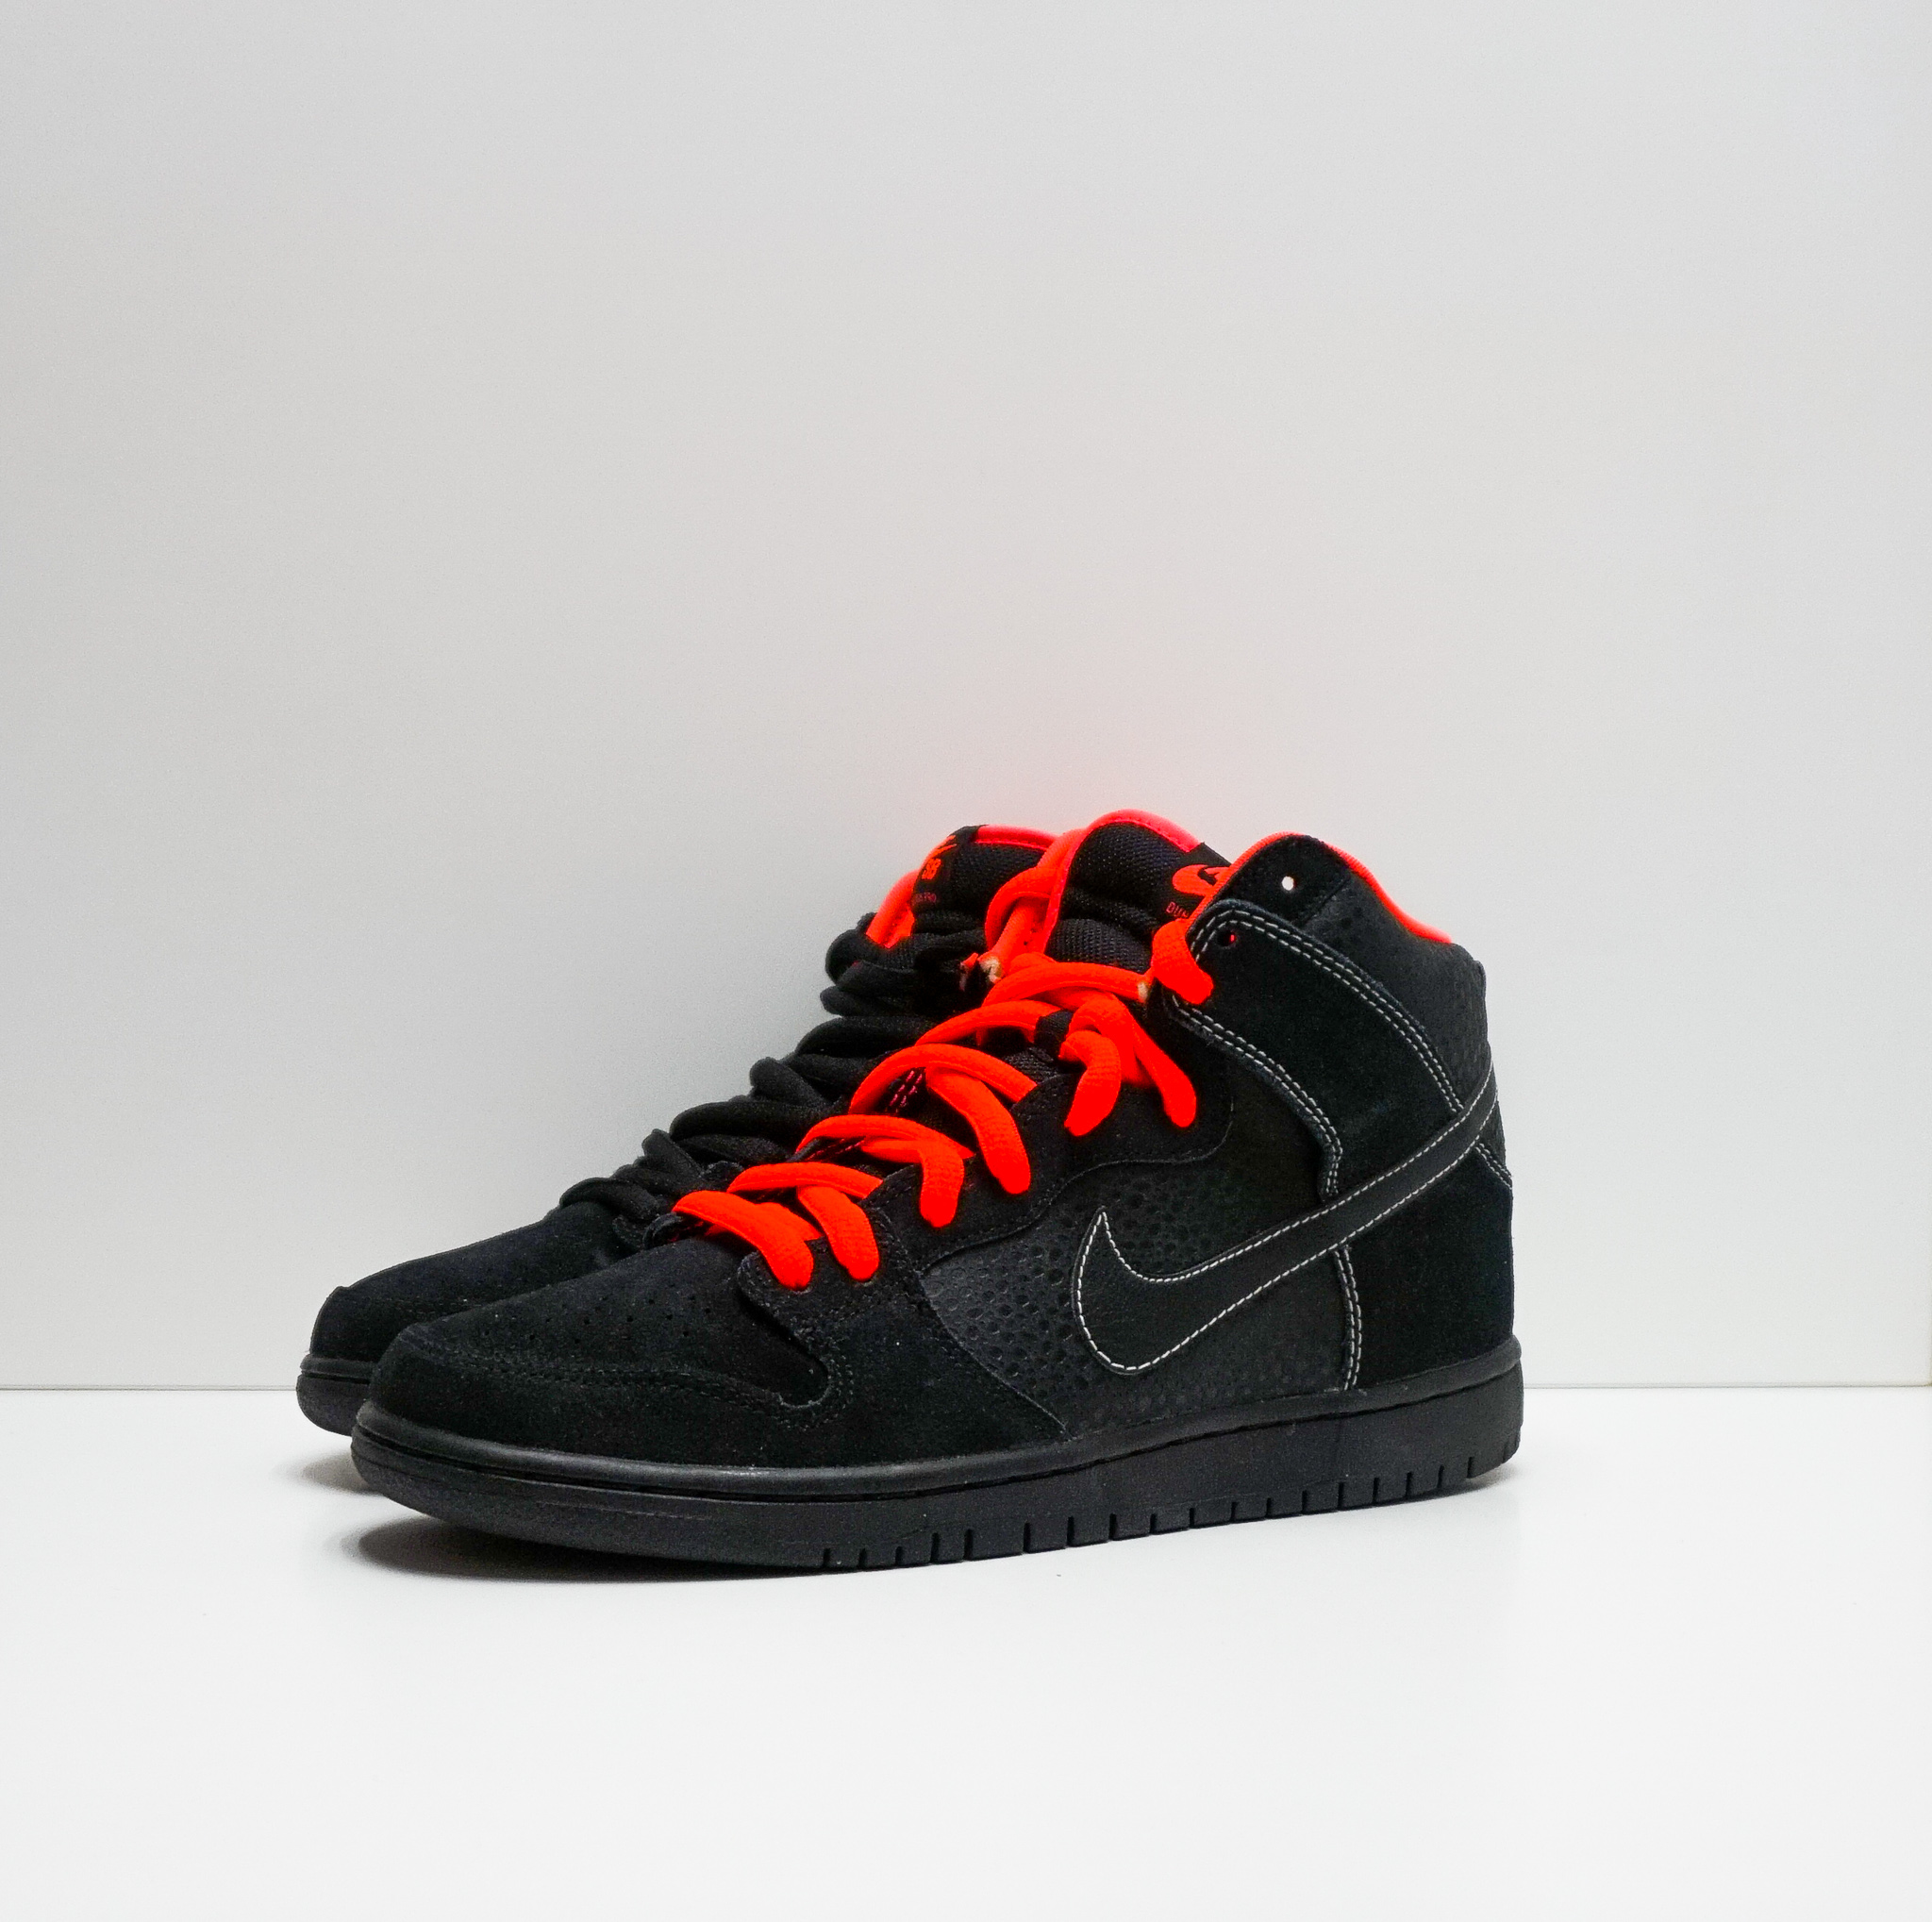 Nike Dunk SB High Black Safari Atomic Red